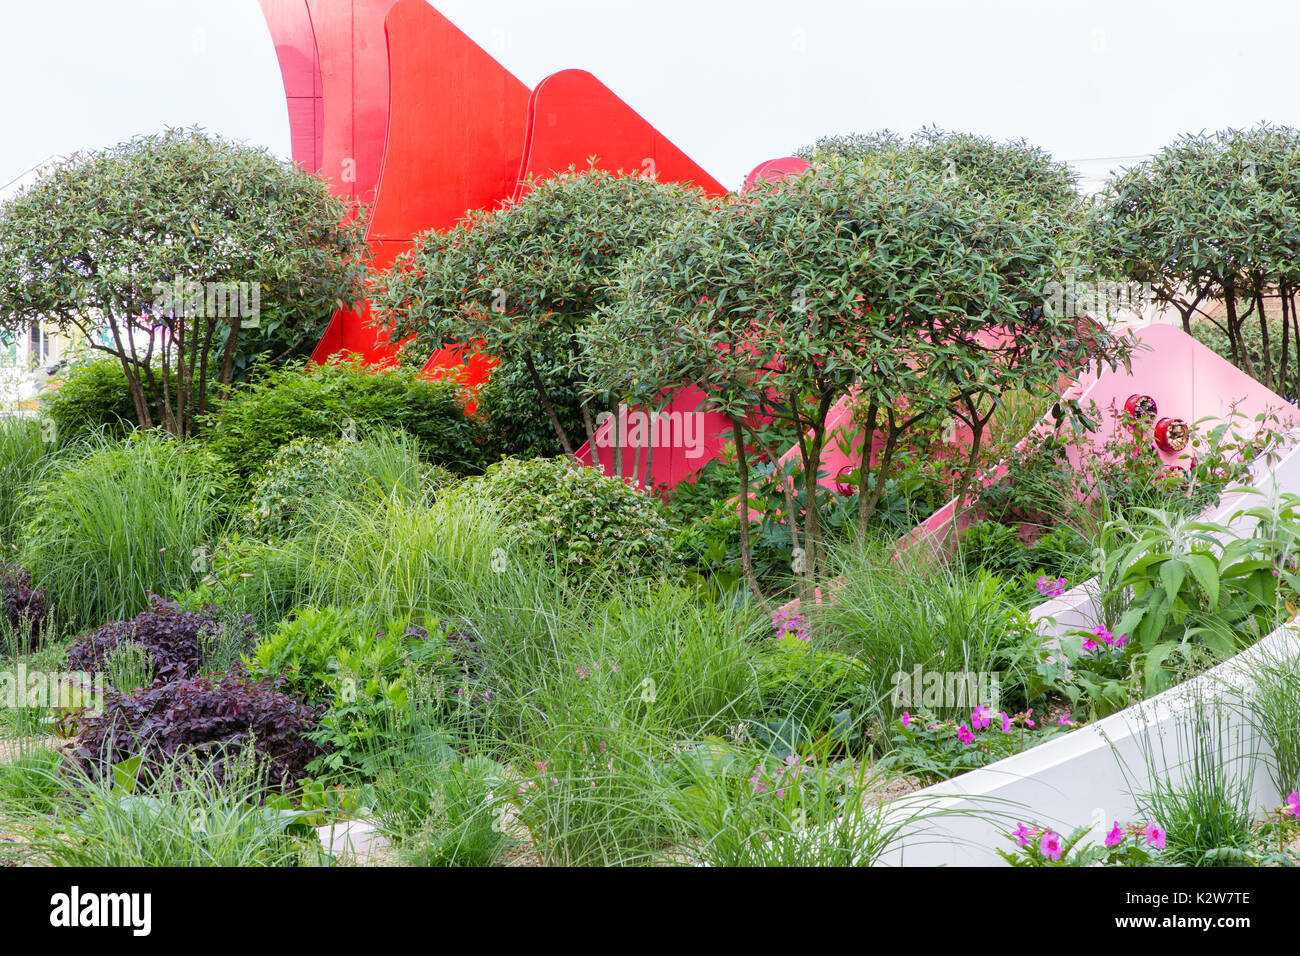 Silk Road Garden, Chengdu, China.  Designers Laurie Chetwood and Patrick Collins - Stock Image